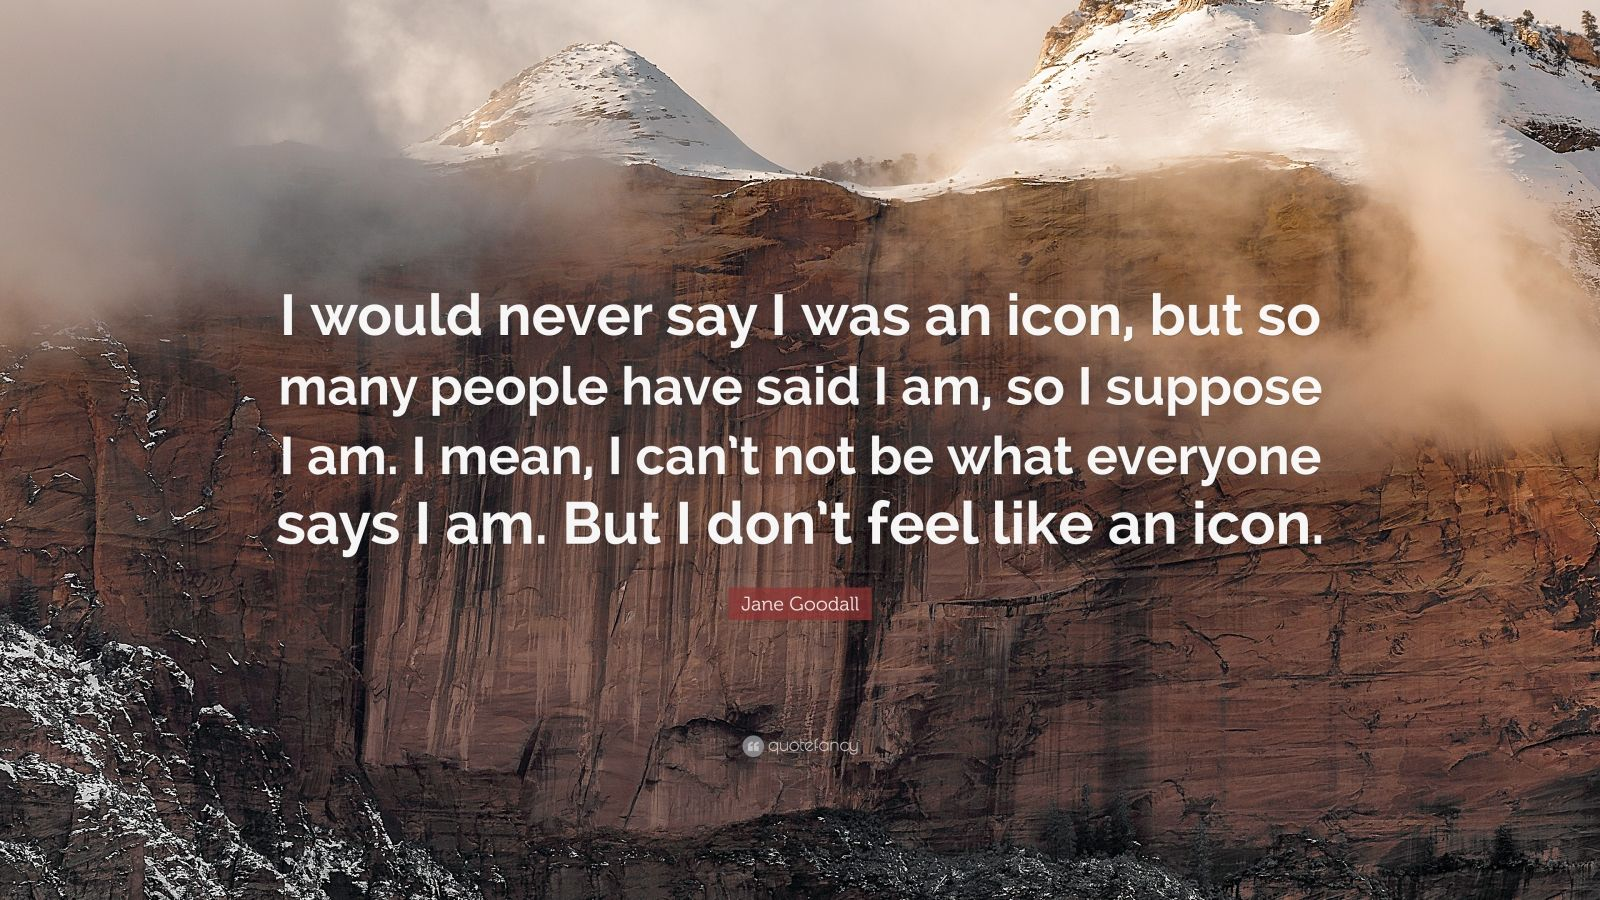 """Jane Goodall Quote: """"I would never say I was an icon, but so many people have said I am, so I suppose I am. I mean, I can't not be what everyone says I am. But I don't feel like an icon."""""""